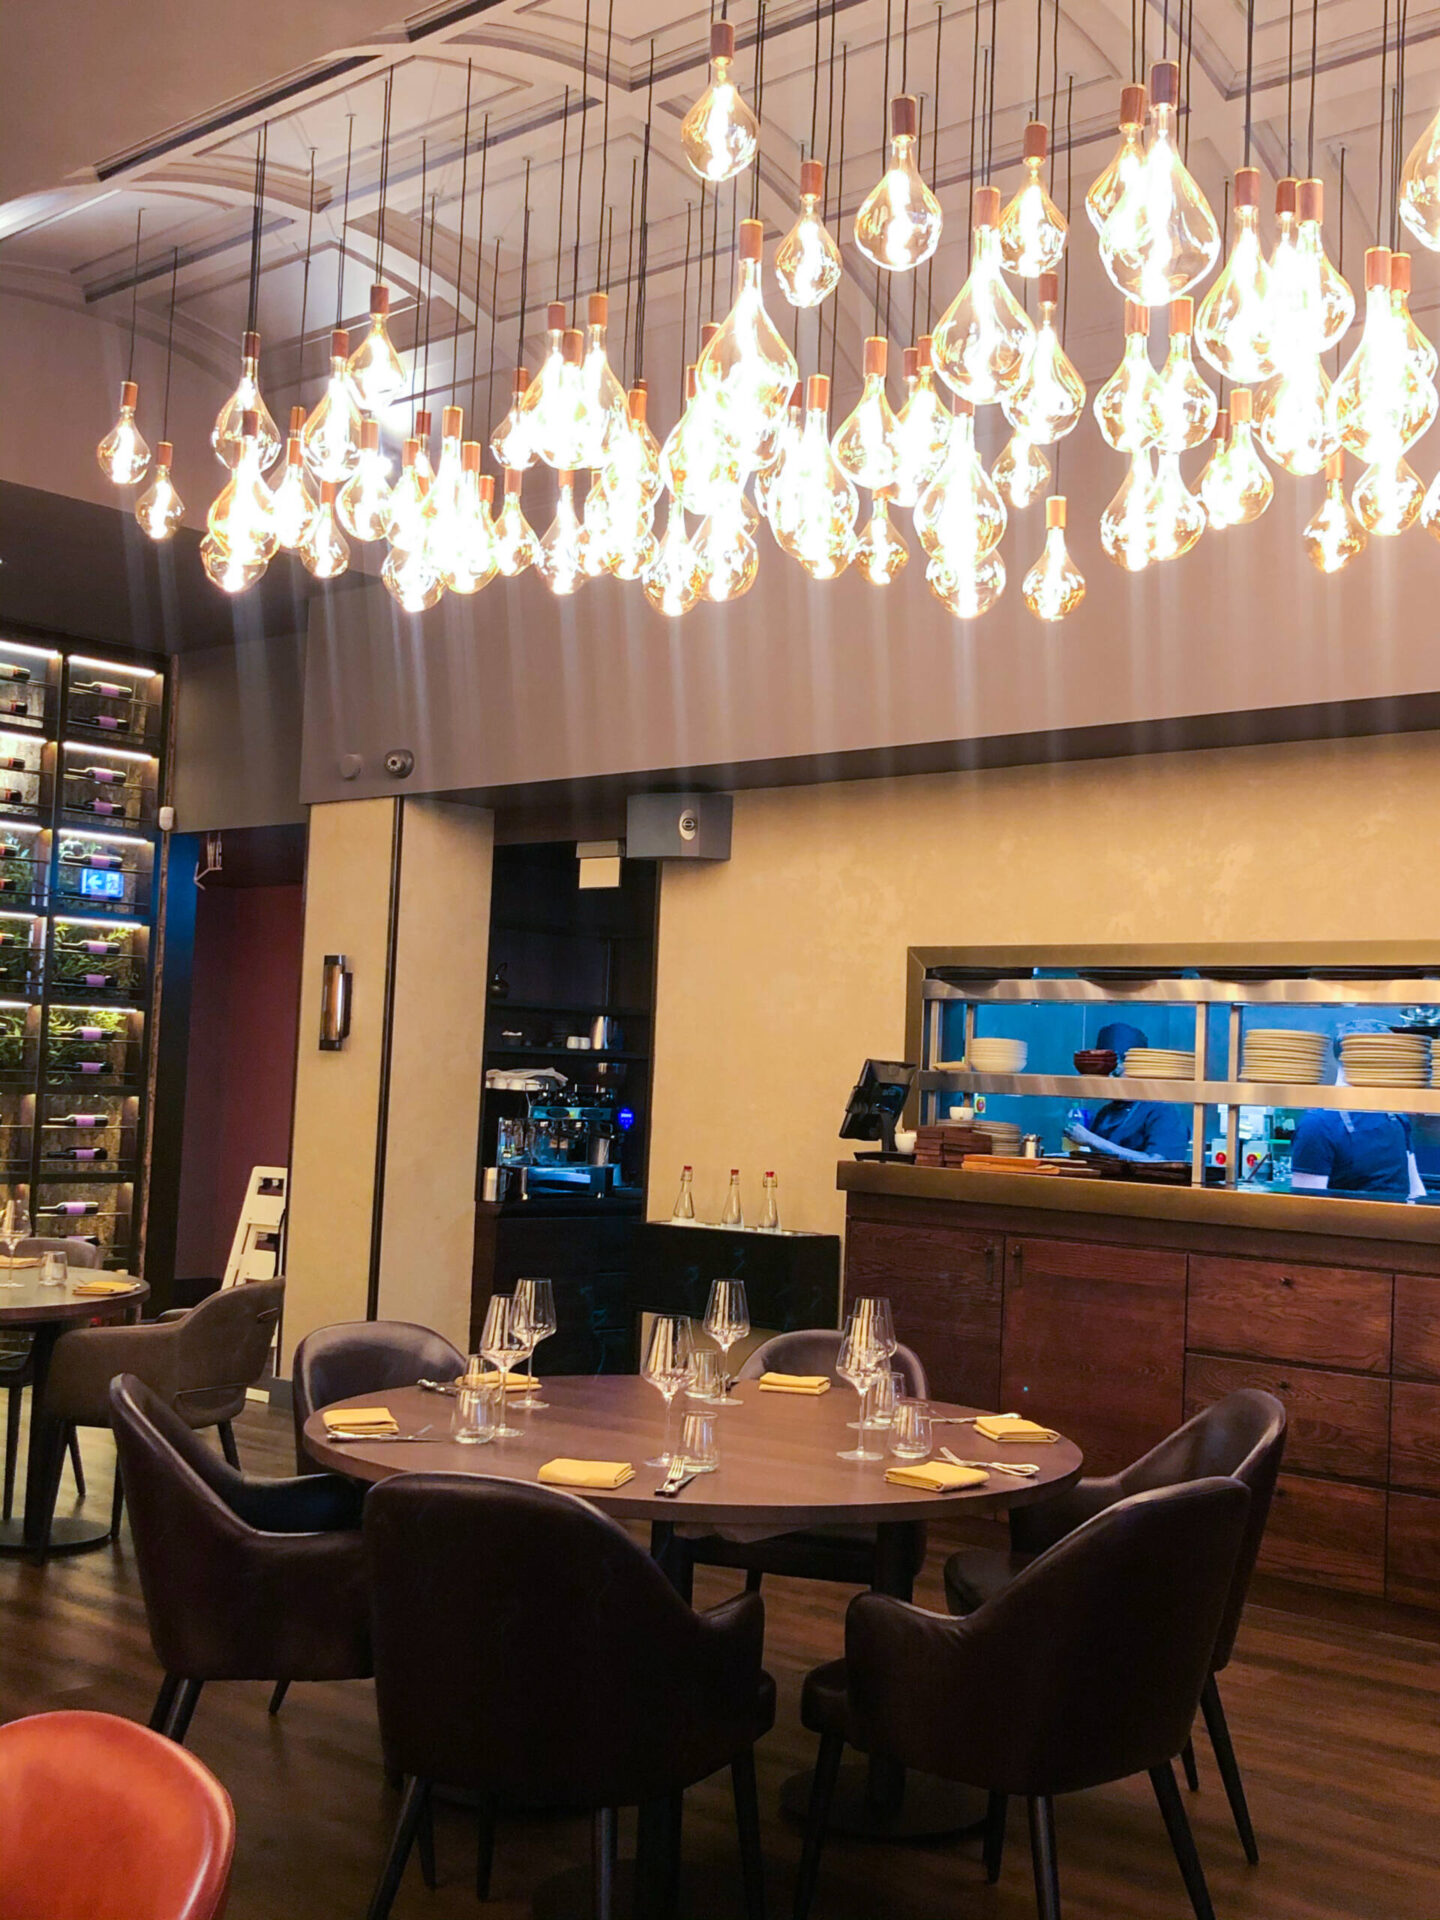 Pulperia tables and hanging lights